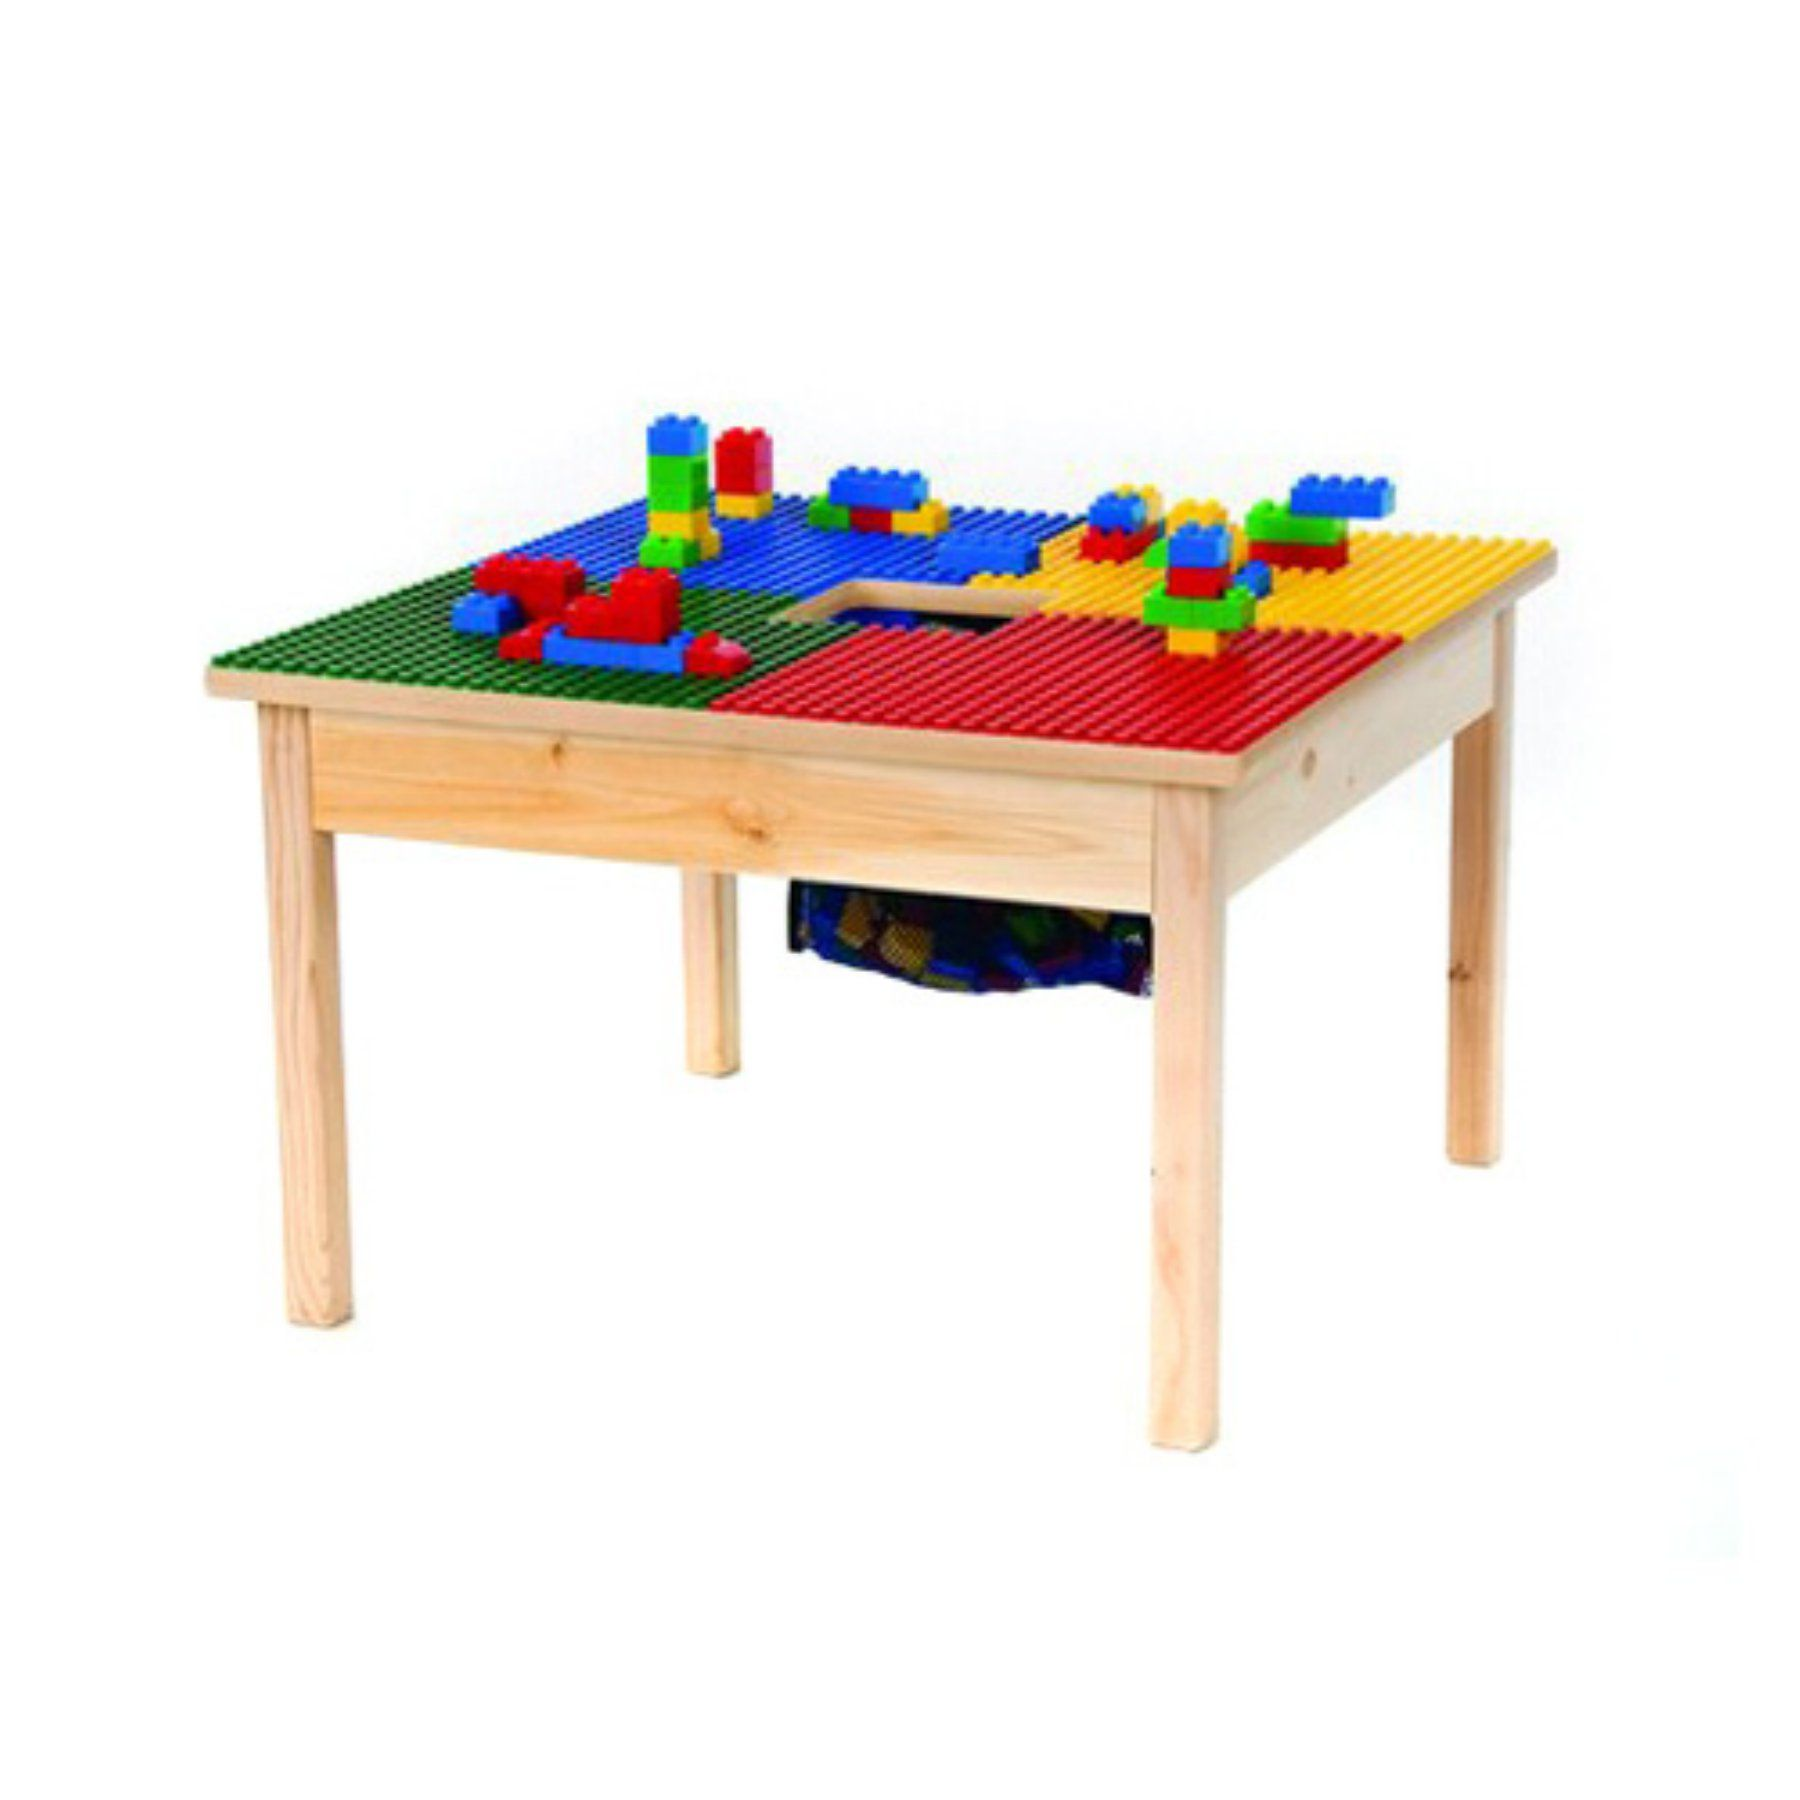 Phenomenal Fun Builder 27 X 27 In Building Block Table Syne009 Download Free Architecture Designs Sospemadebymaigaardcom